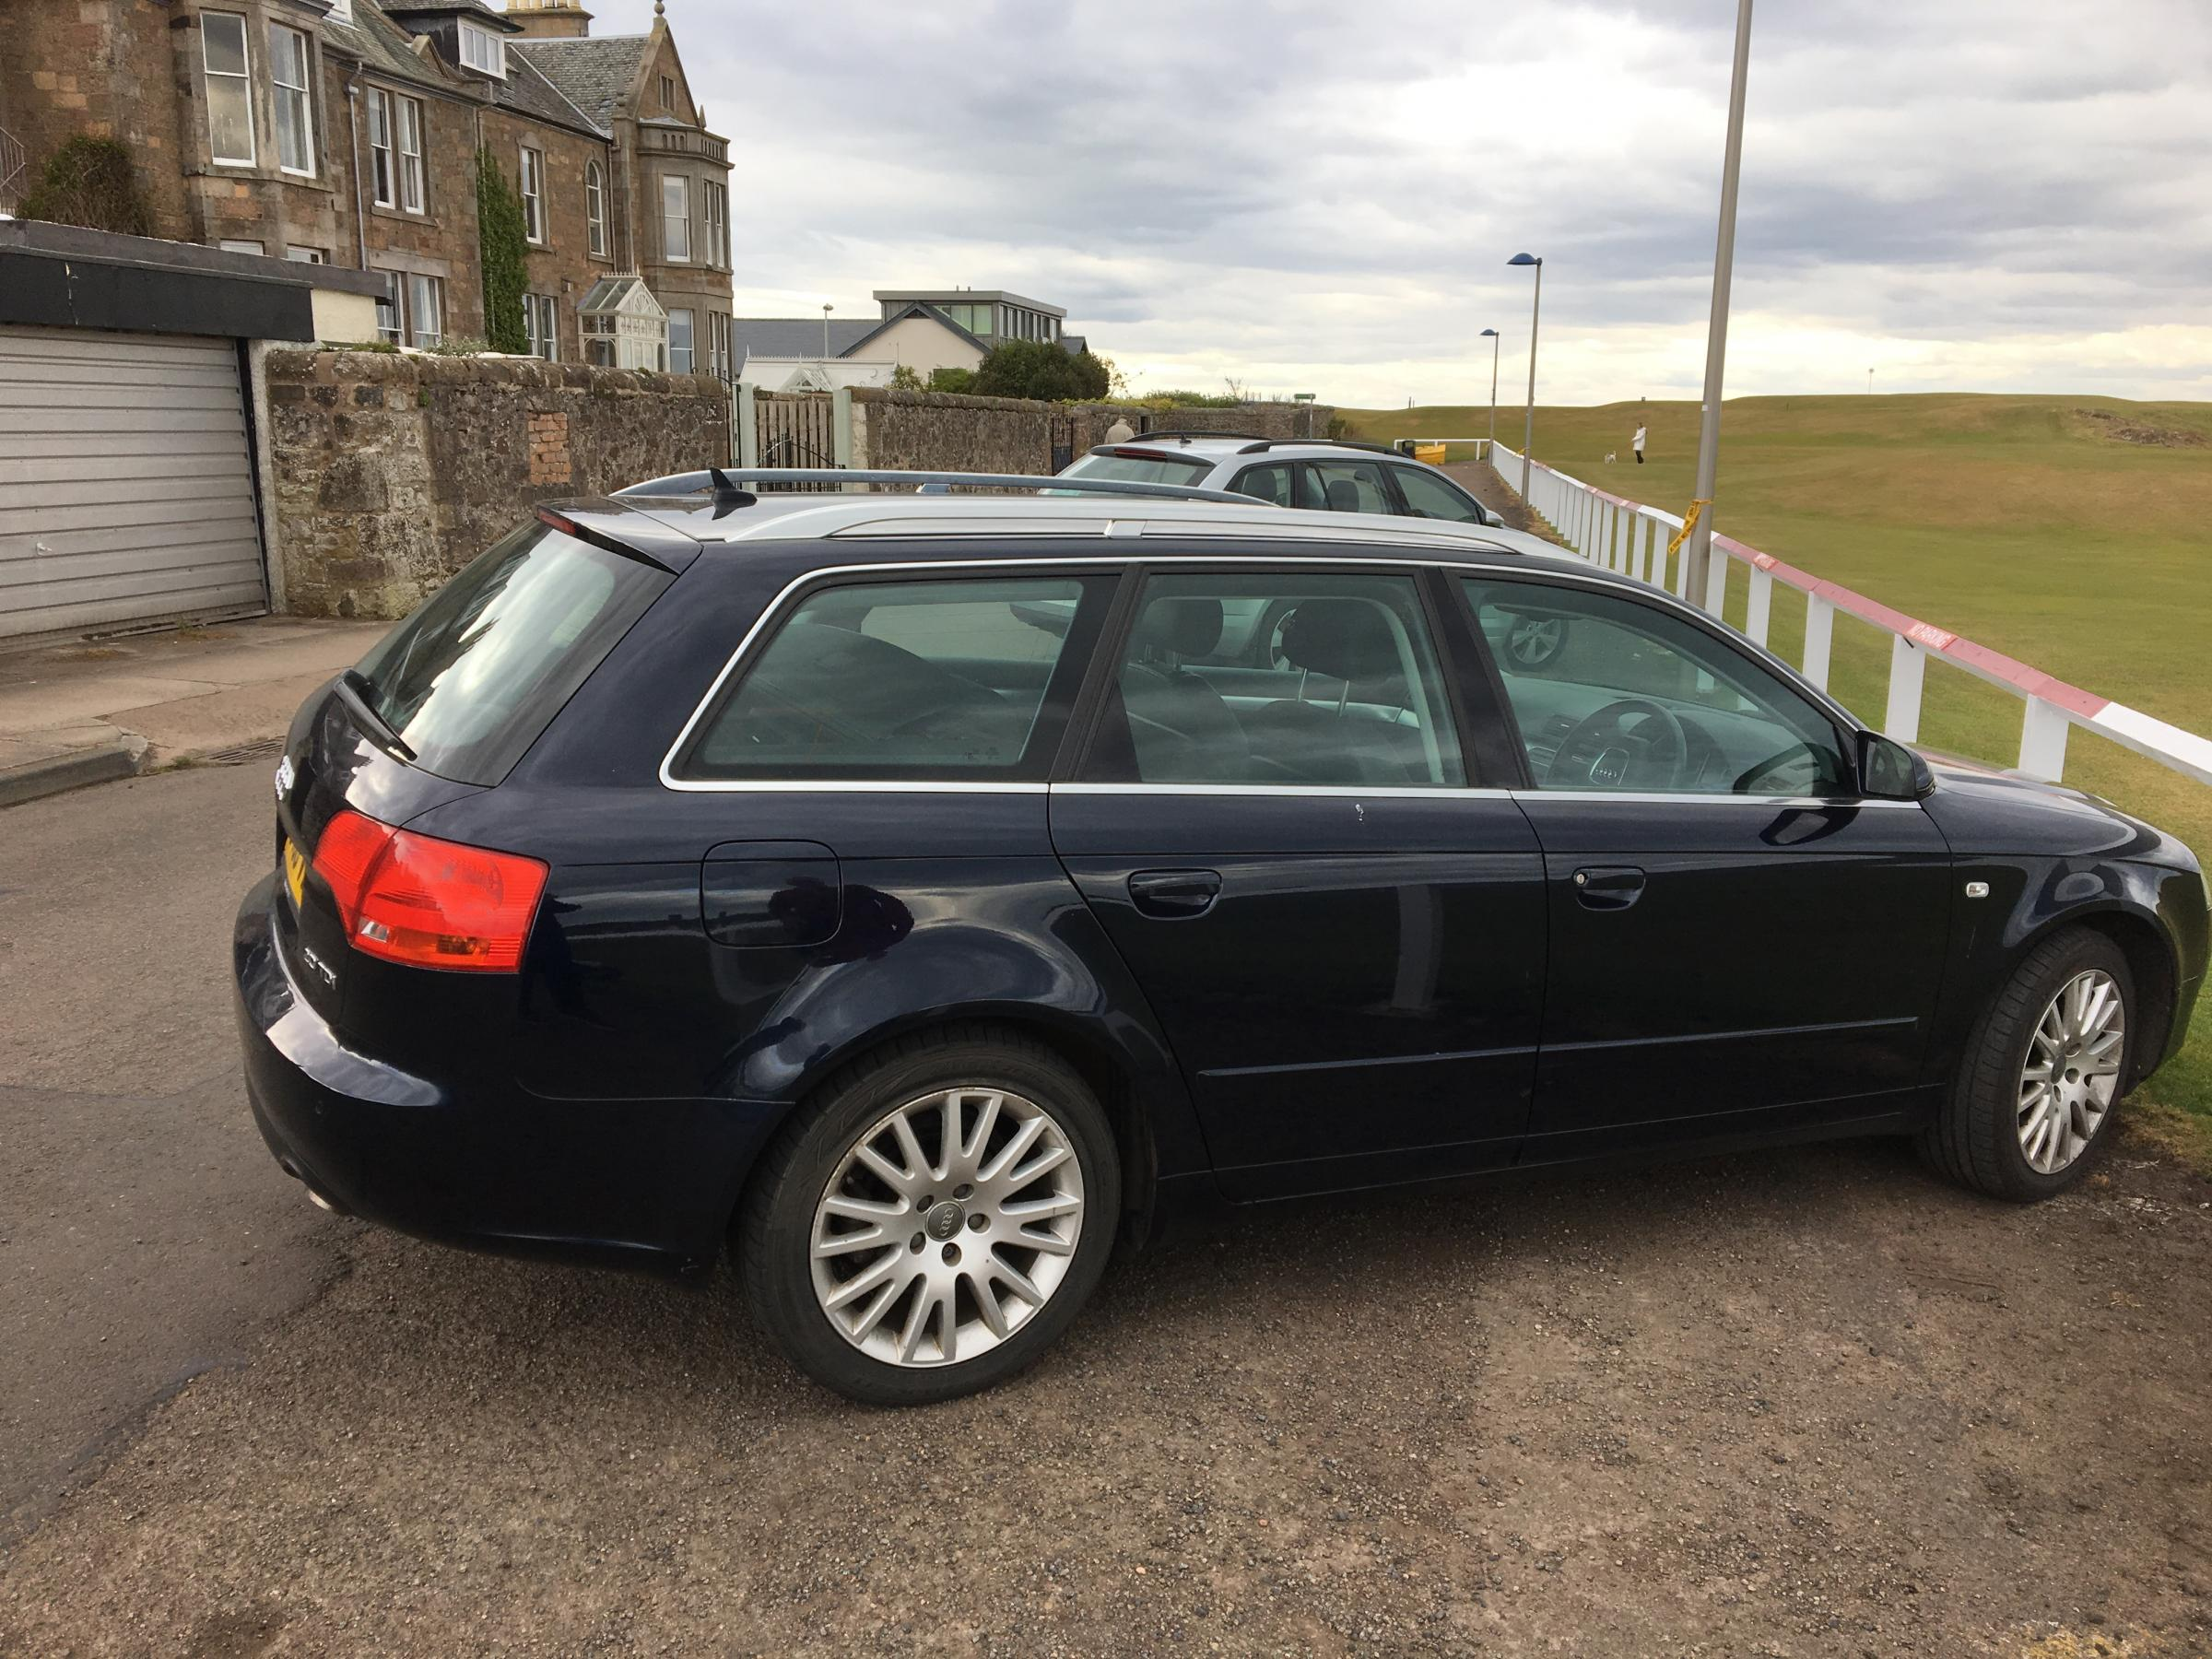 An Audi A4 (pictured) and Honda Jazz were stolen in North Berwick